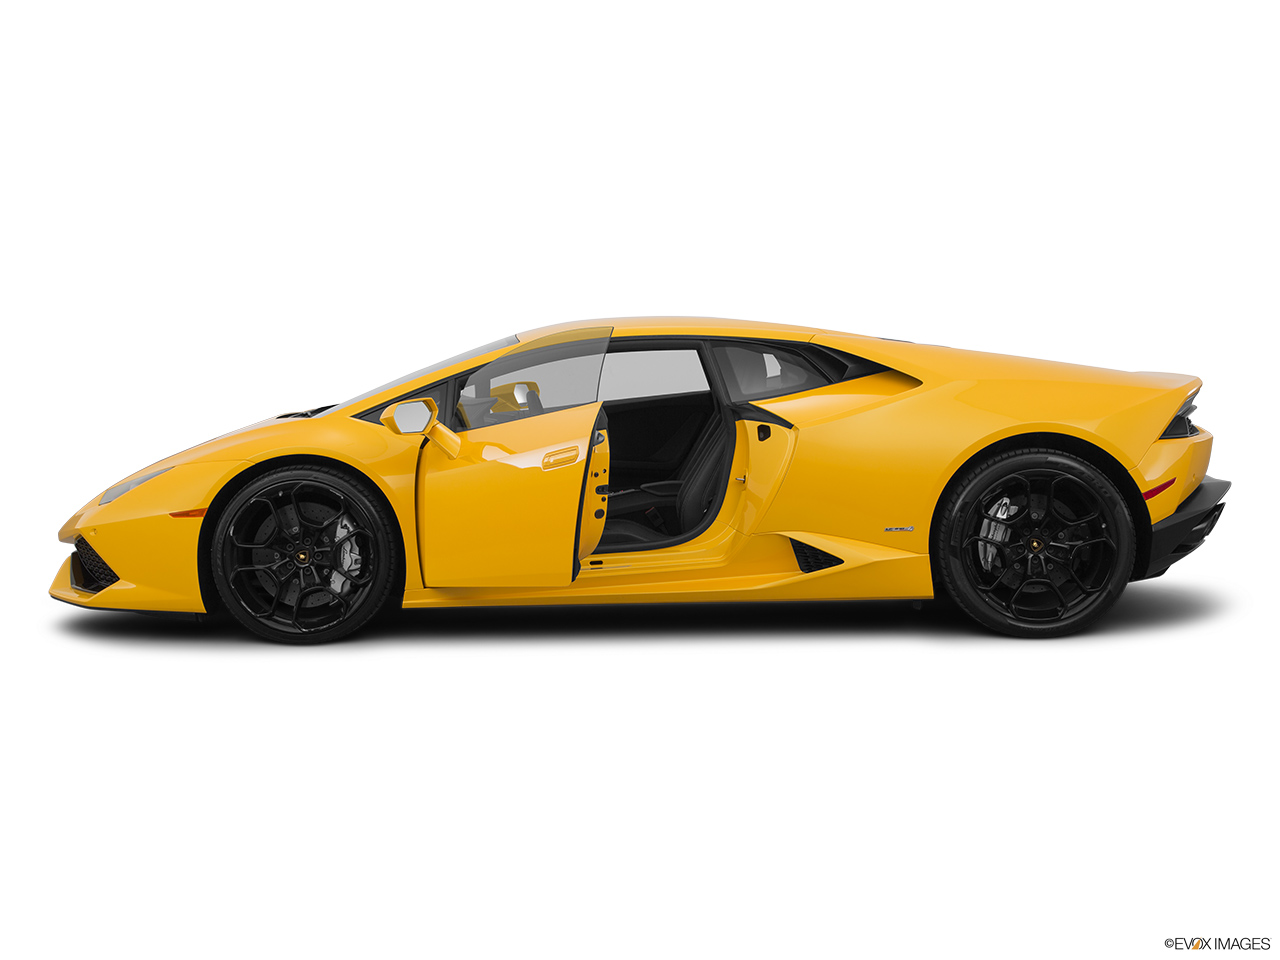 2015 Lamborghini Huracan LP 610-4 Driver's side profile with drivers side door open.